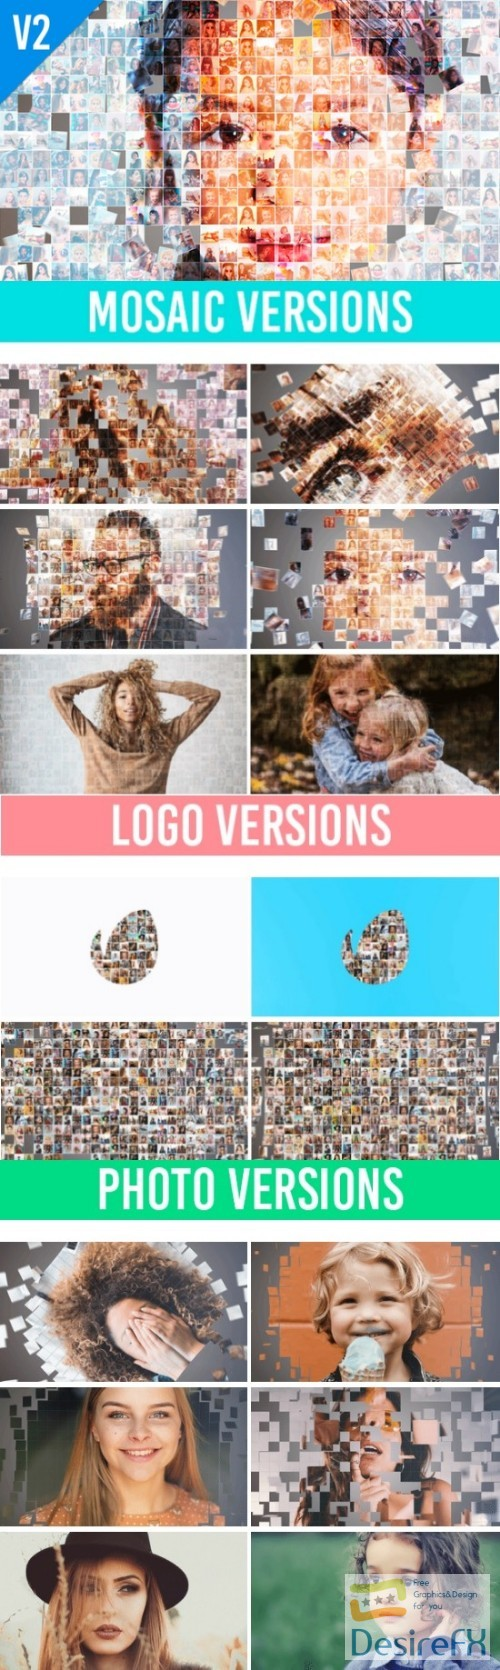 after-effects-projects - Videohive Mosaic Photo Animation Pro II 22566185